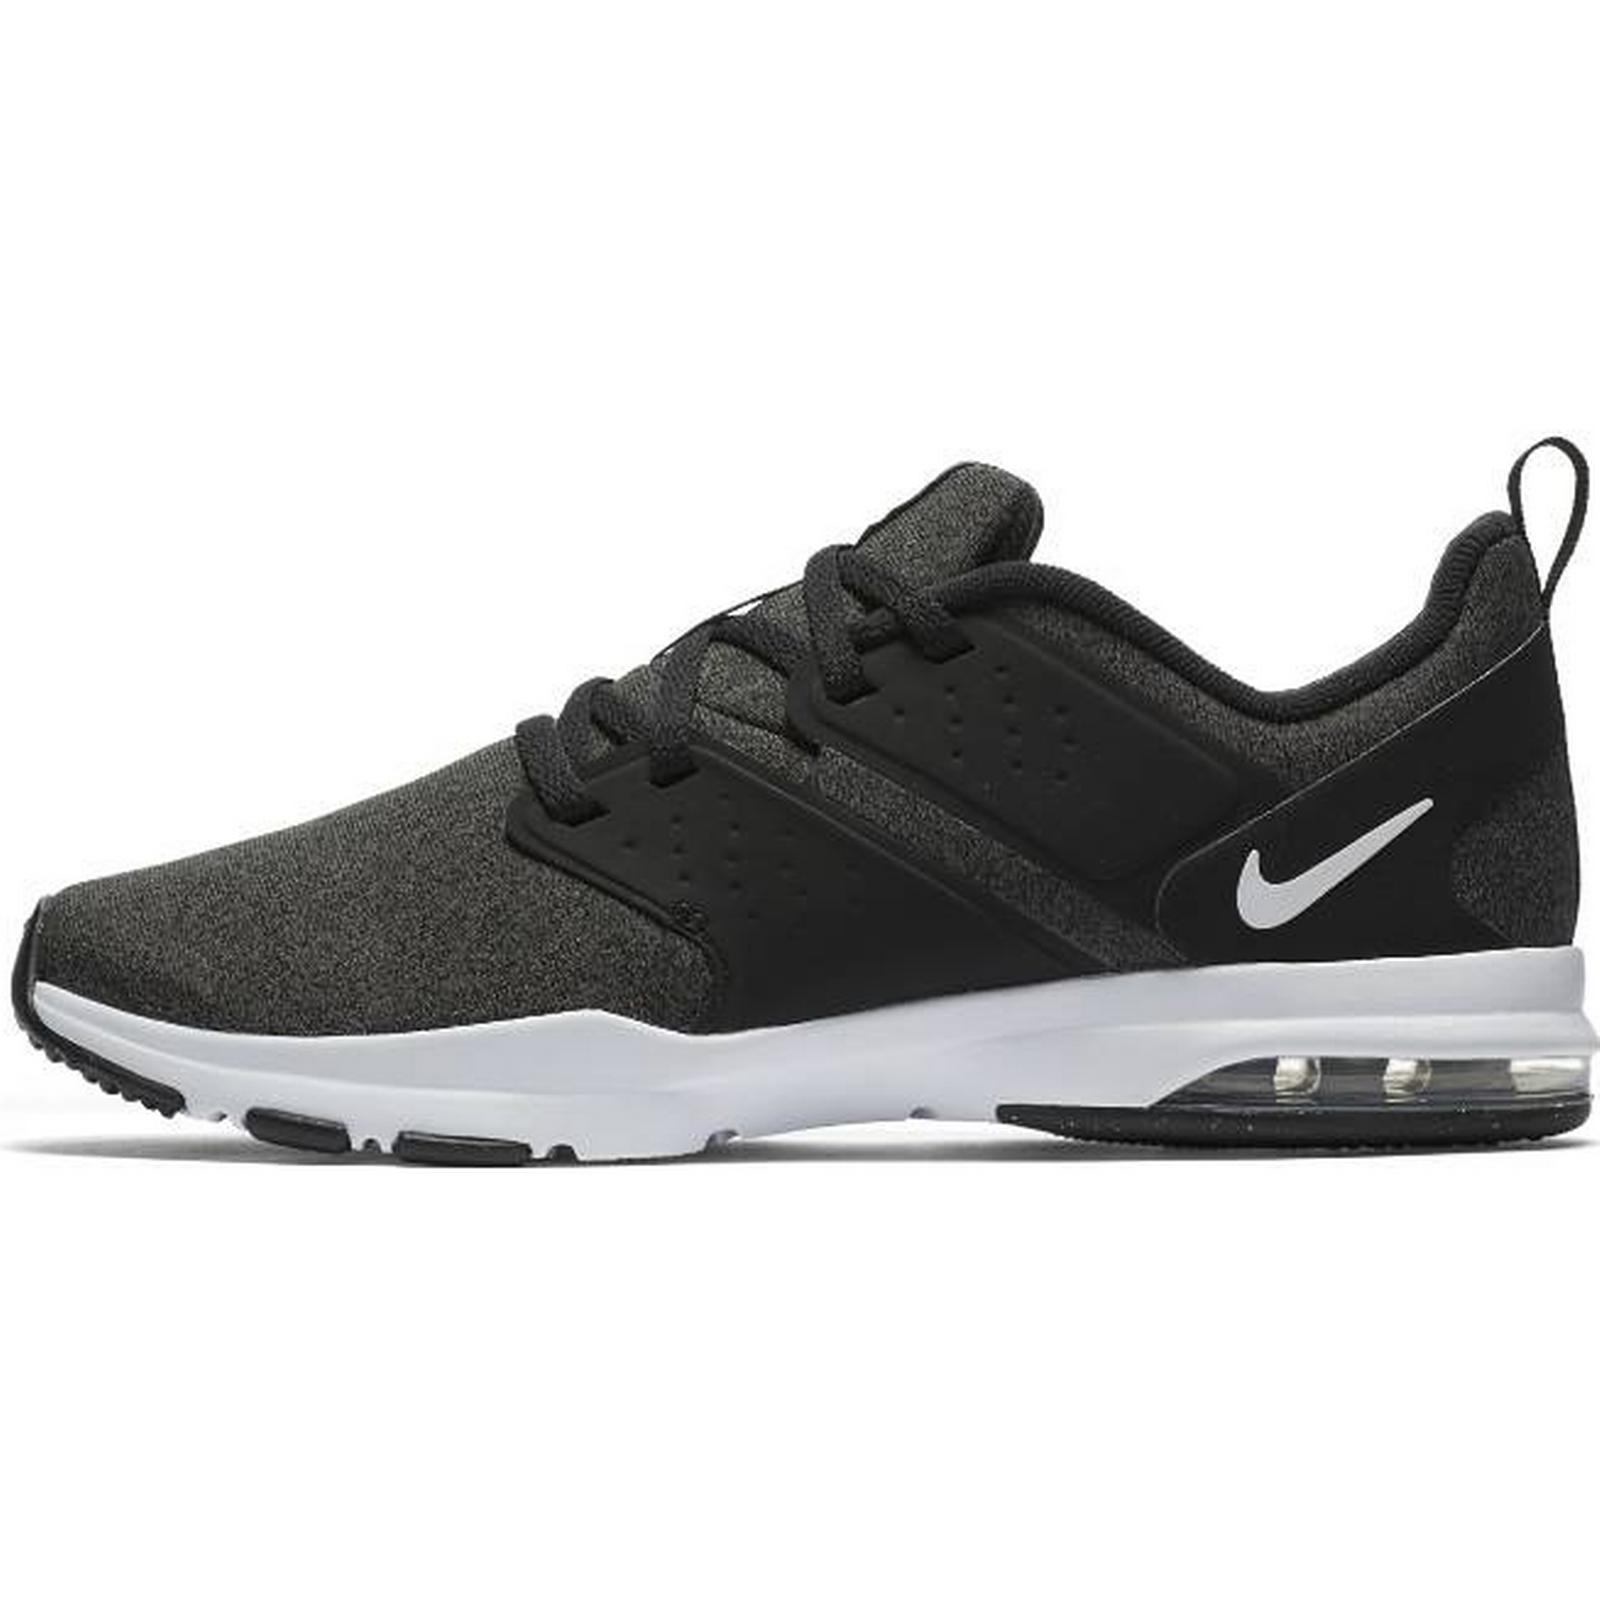 Men's/Women's: NIKE Damskie Buty TR: Treningowe Nike Air Bella TR: Buty Fashionable 07e171